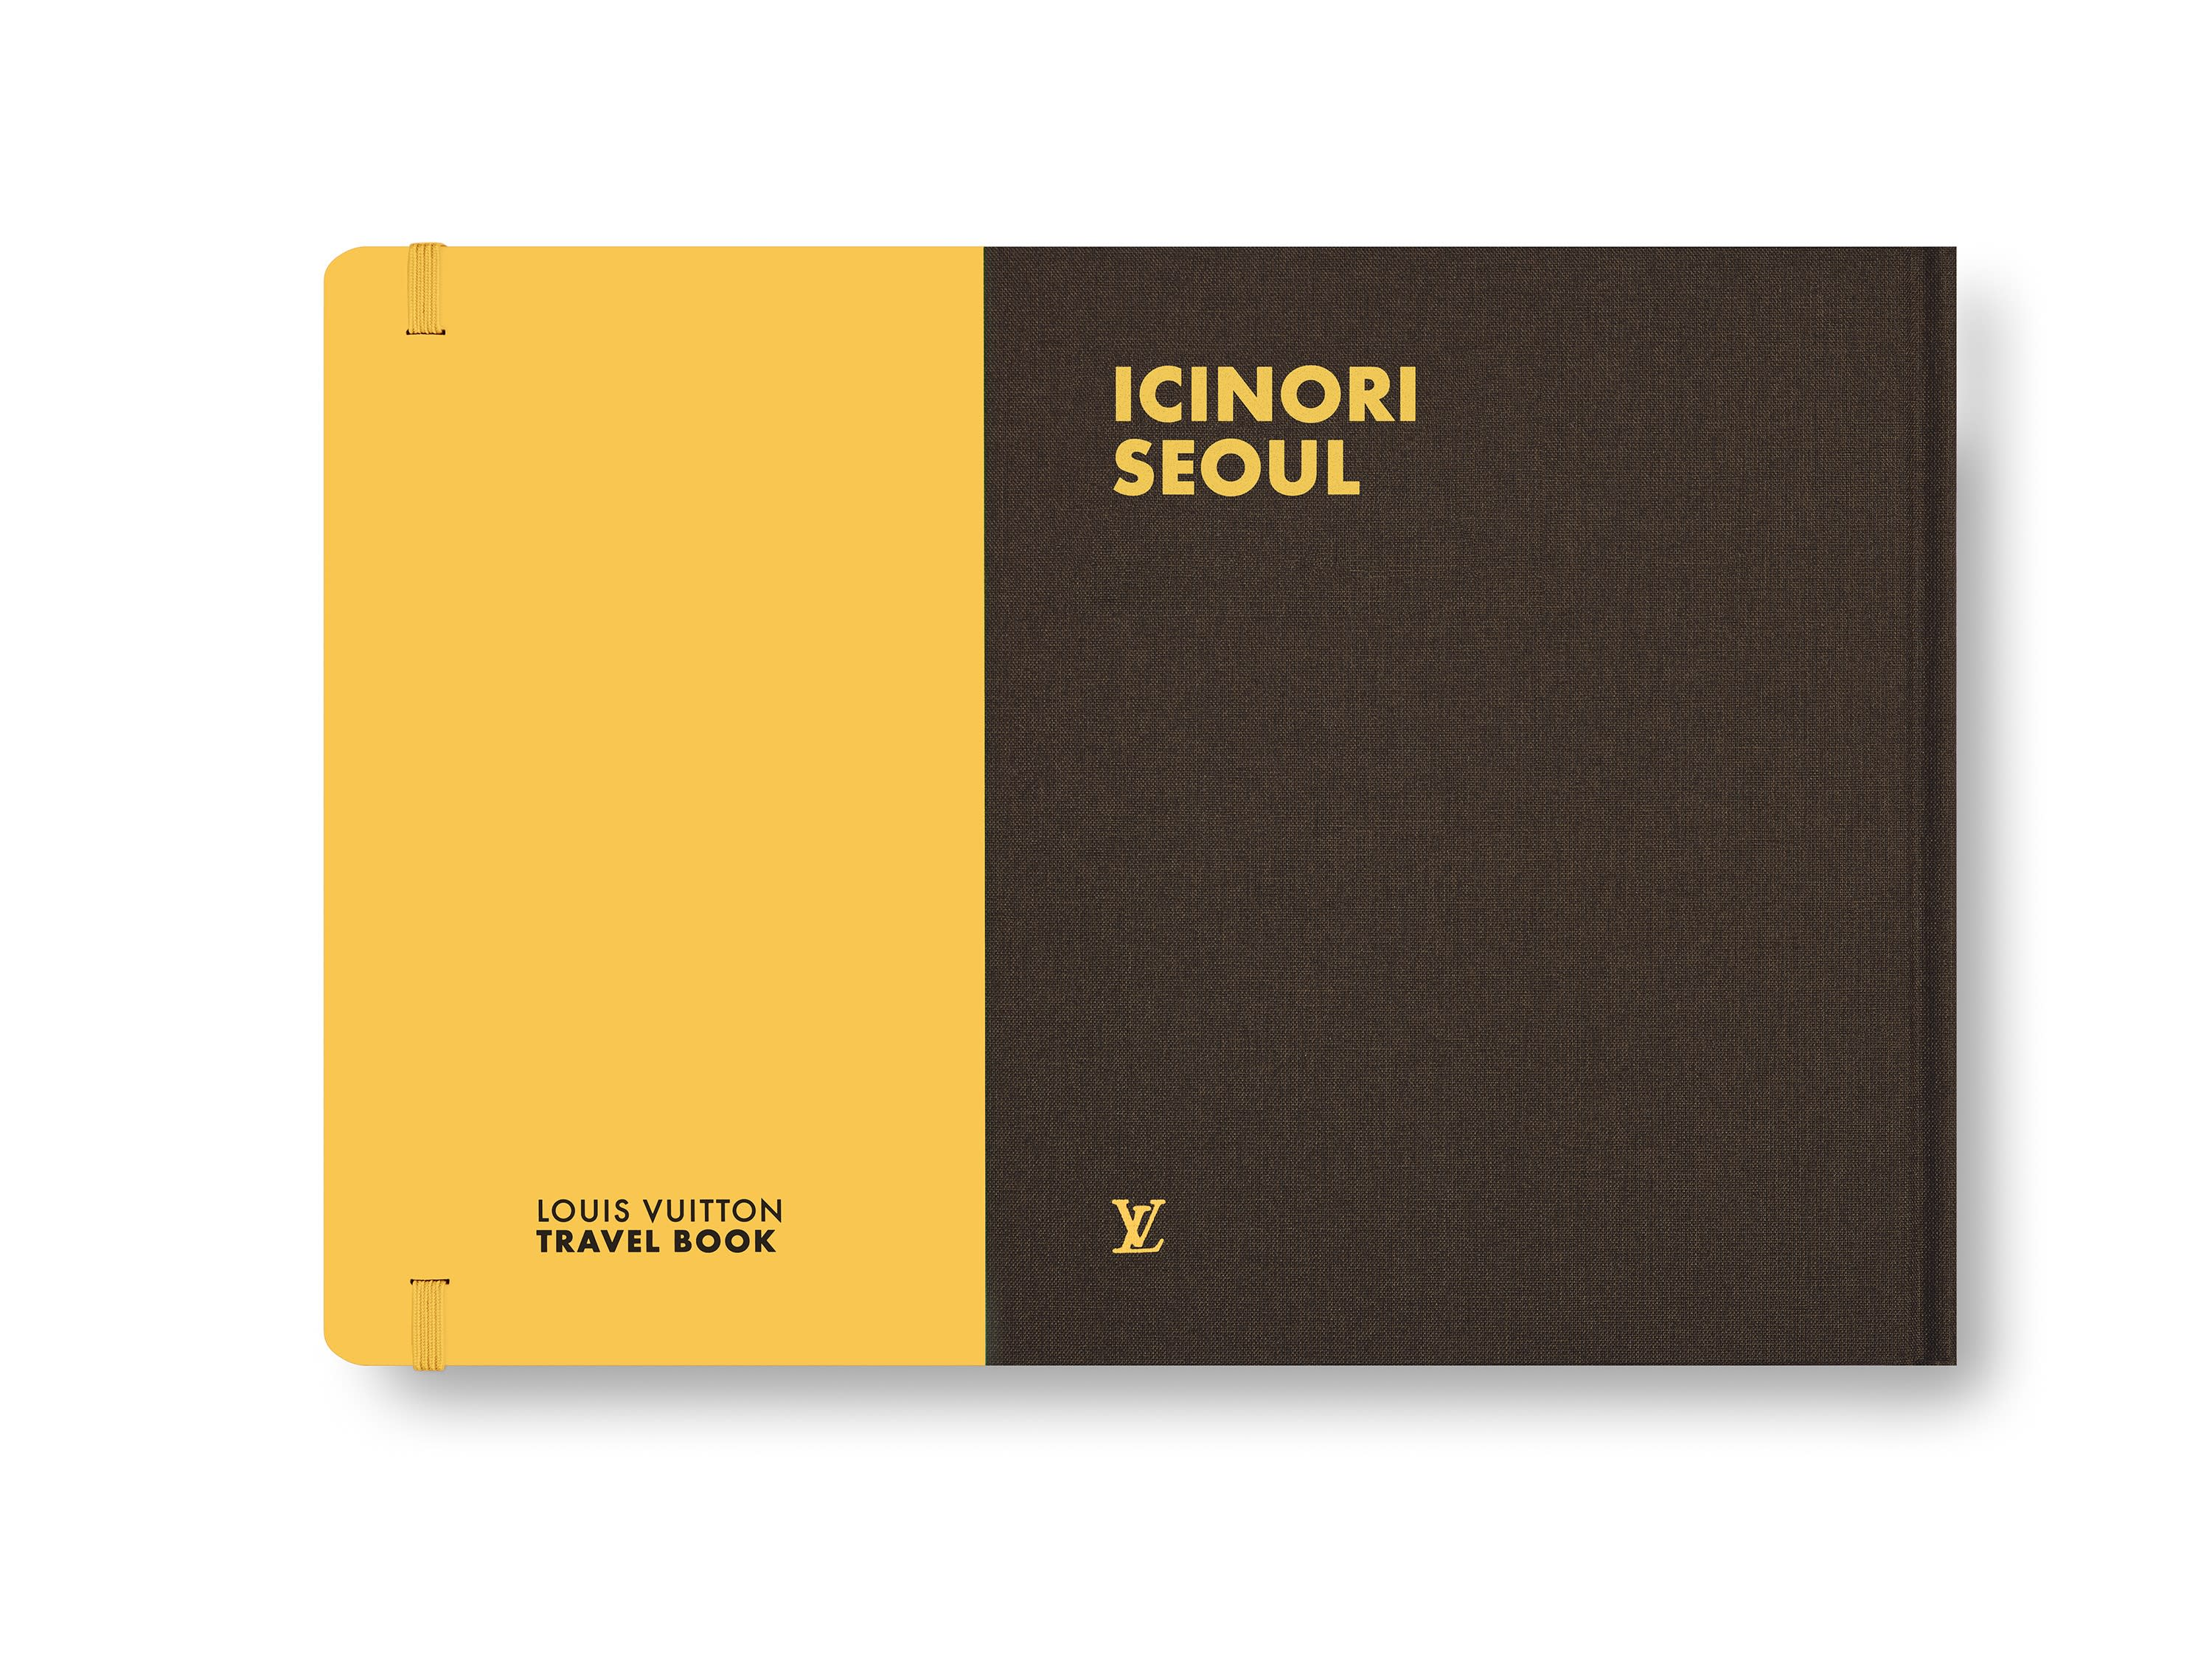 185f08d4fb Louis Vuitton releases new illustrated travel guides for LA and Seoul